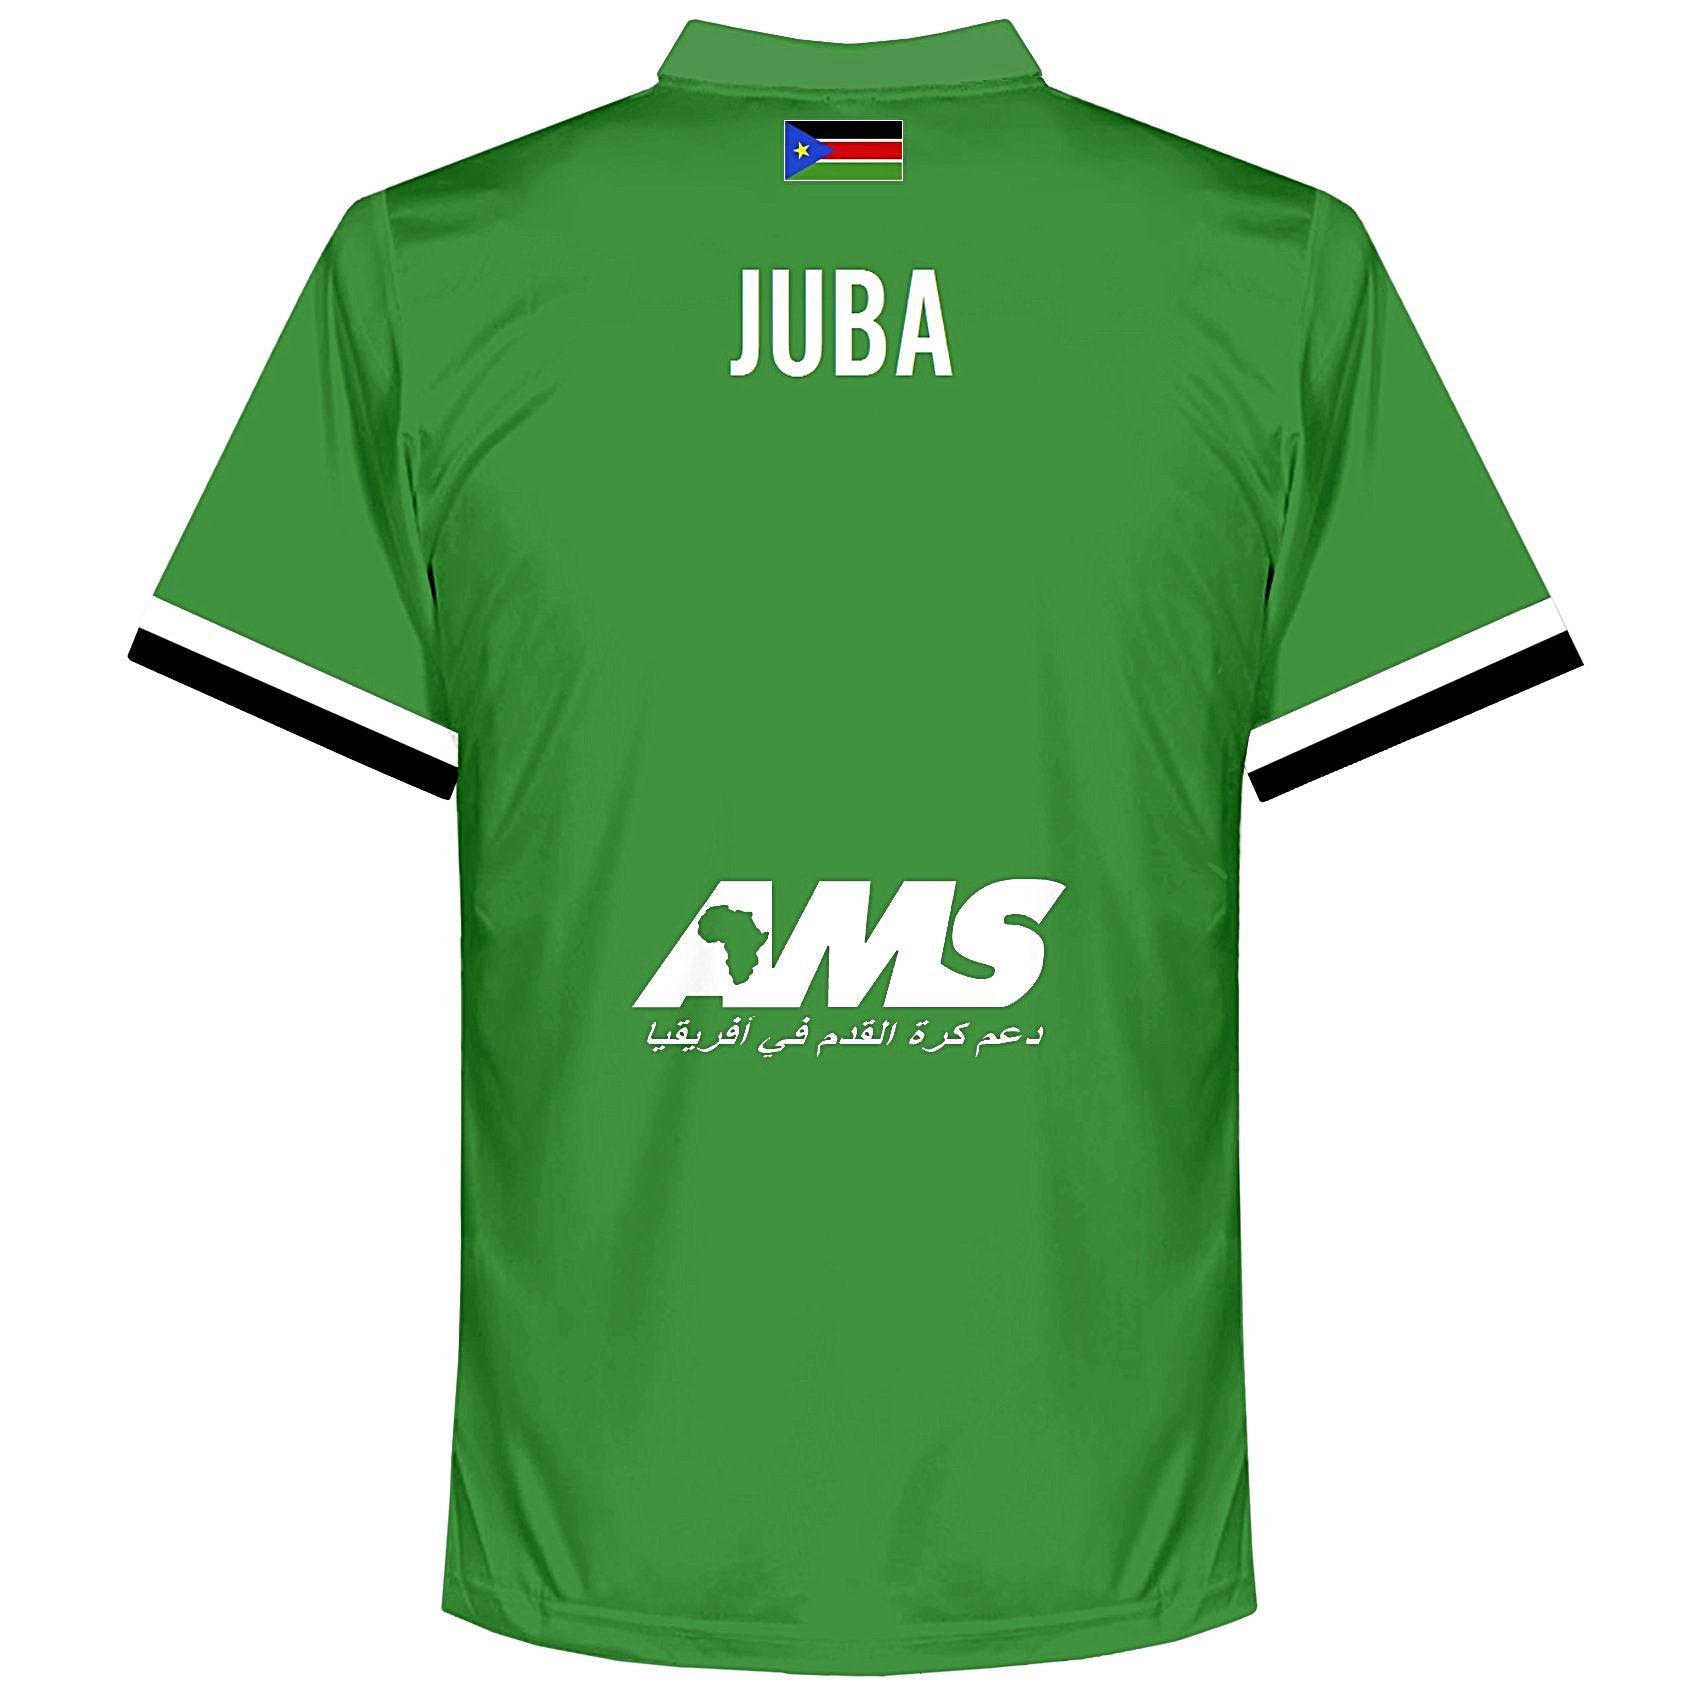 Juba National Unity Day Shirt